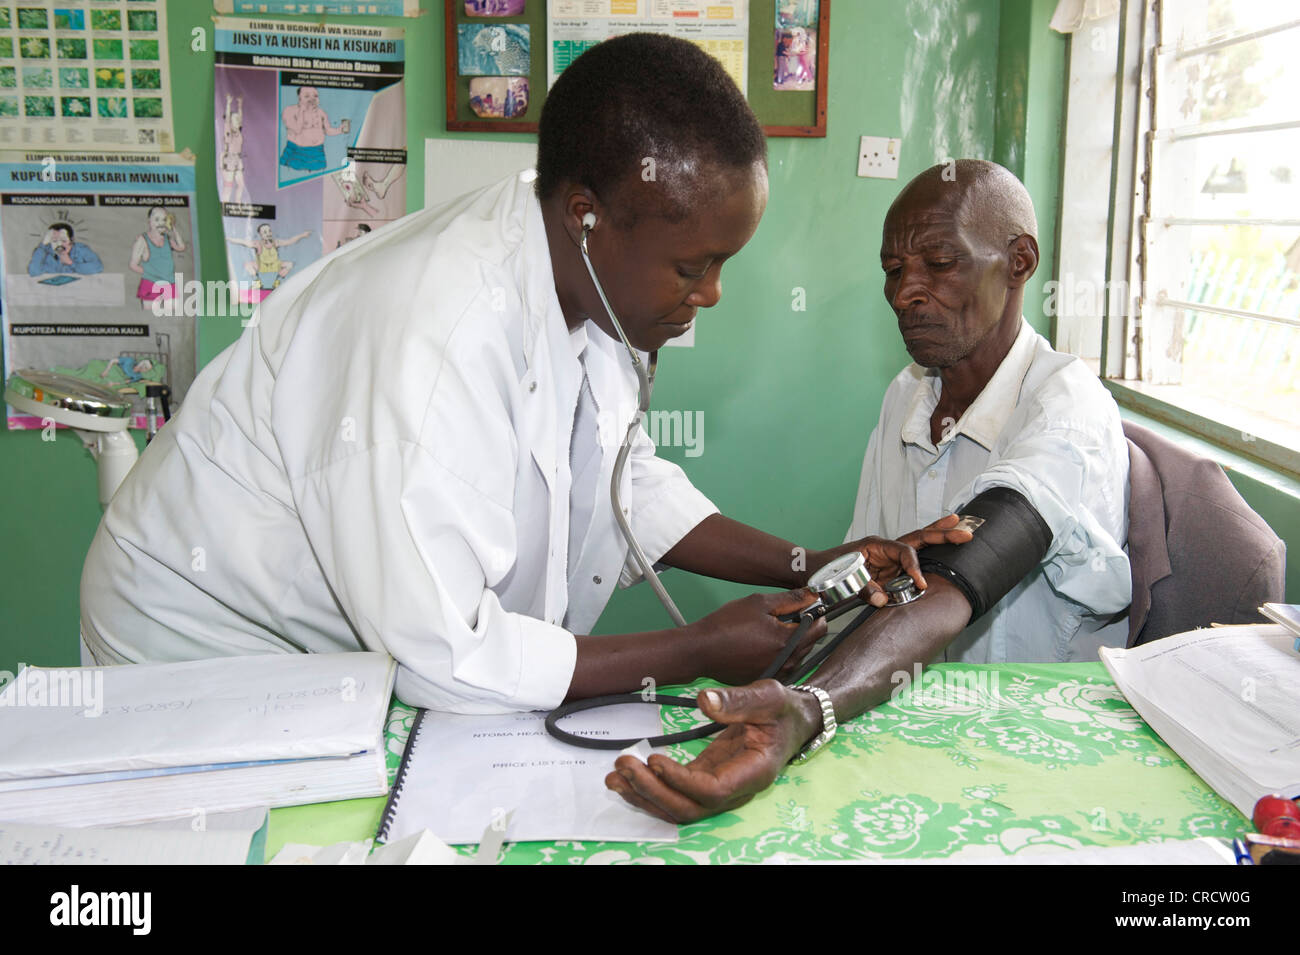 Doctor and patient in a hospital near Bukoba, Tanzania, Africa - Stock Image